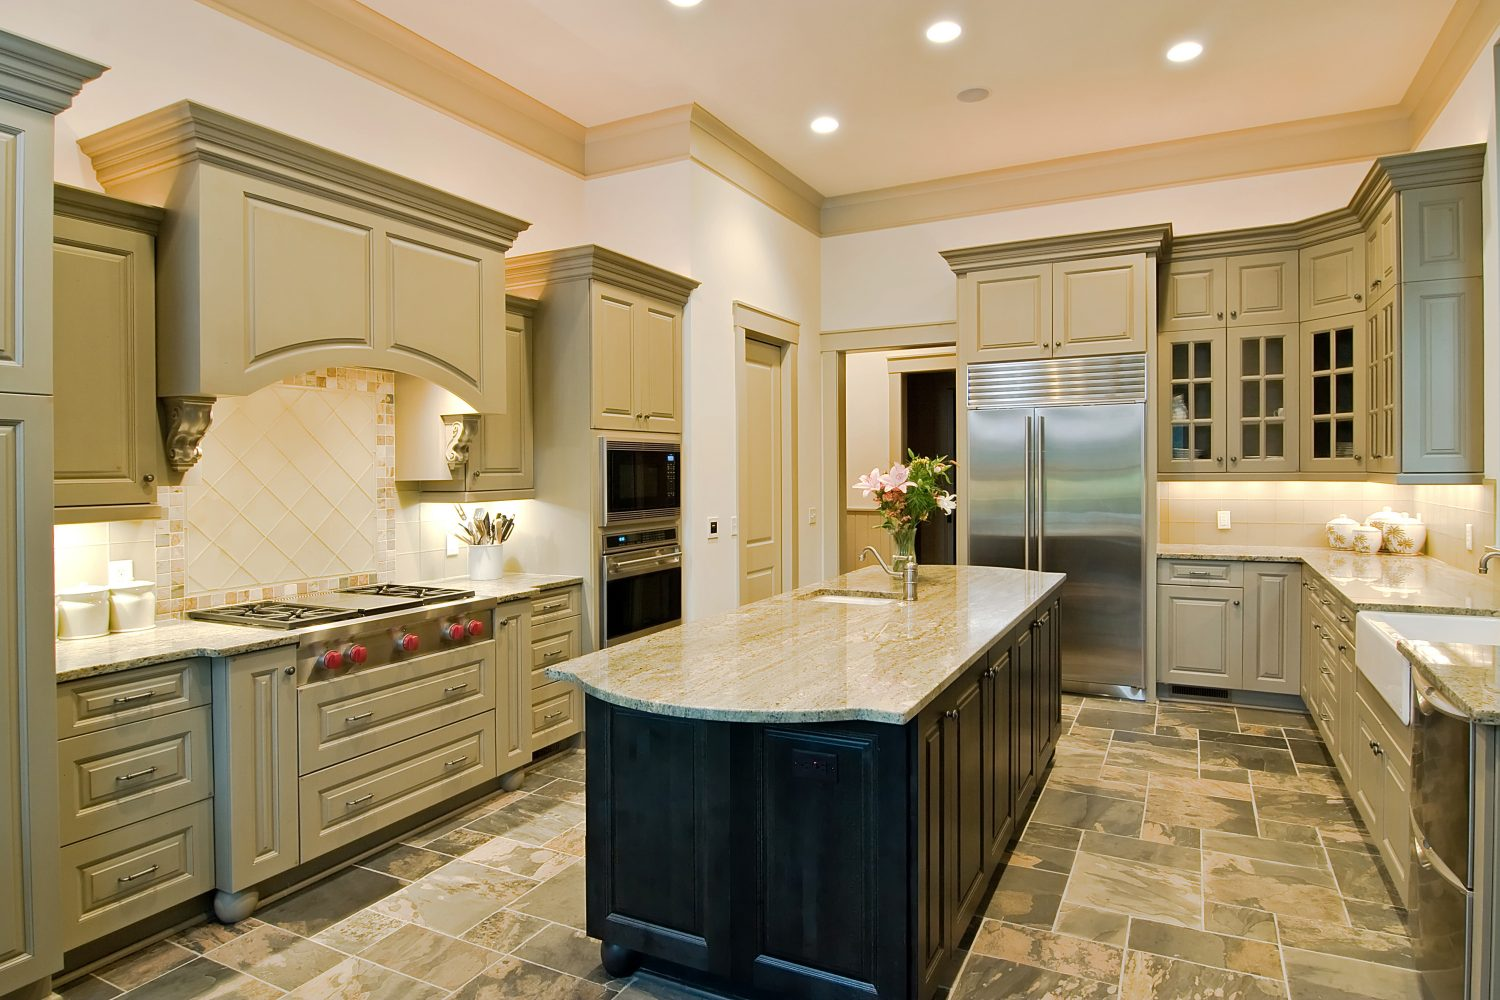 Bourque Cabinets Cabinet Makers Bathroom Kitchen Cabinet Remodeling